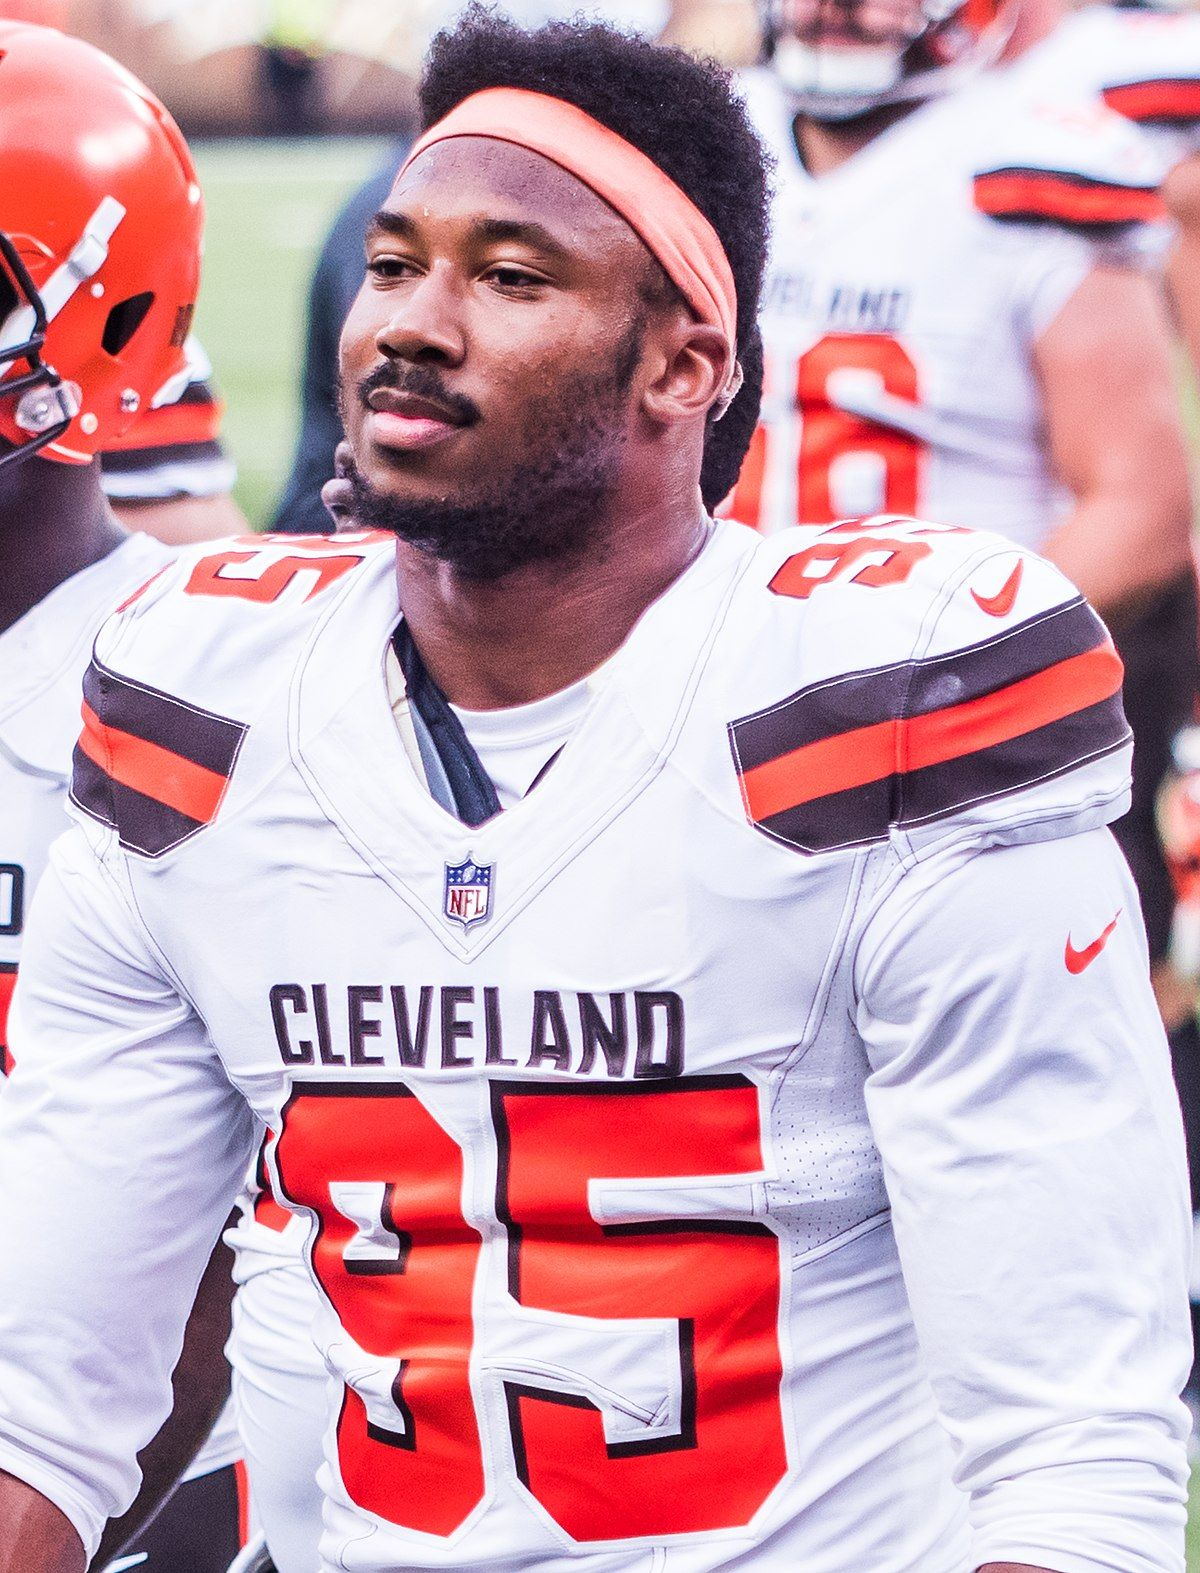 Pin by Fortnite God on Cleveland browns football